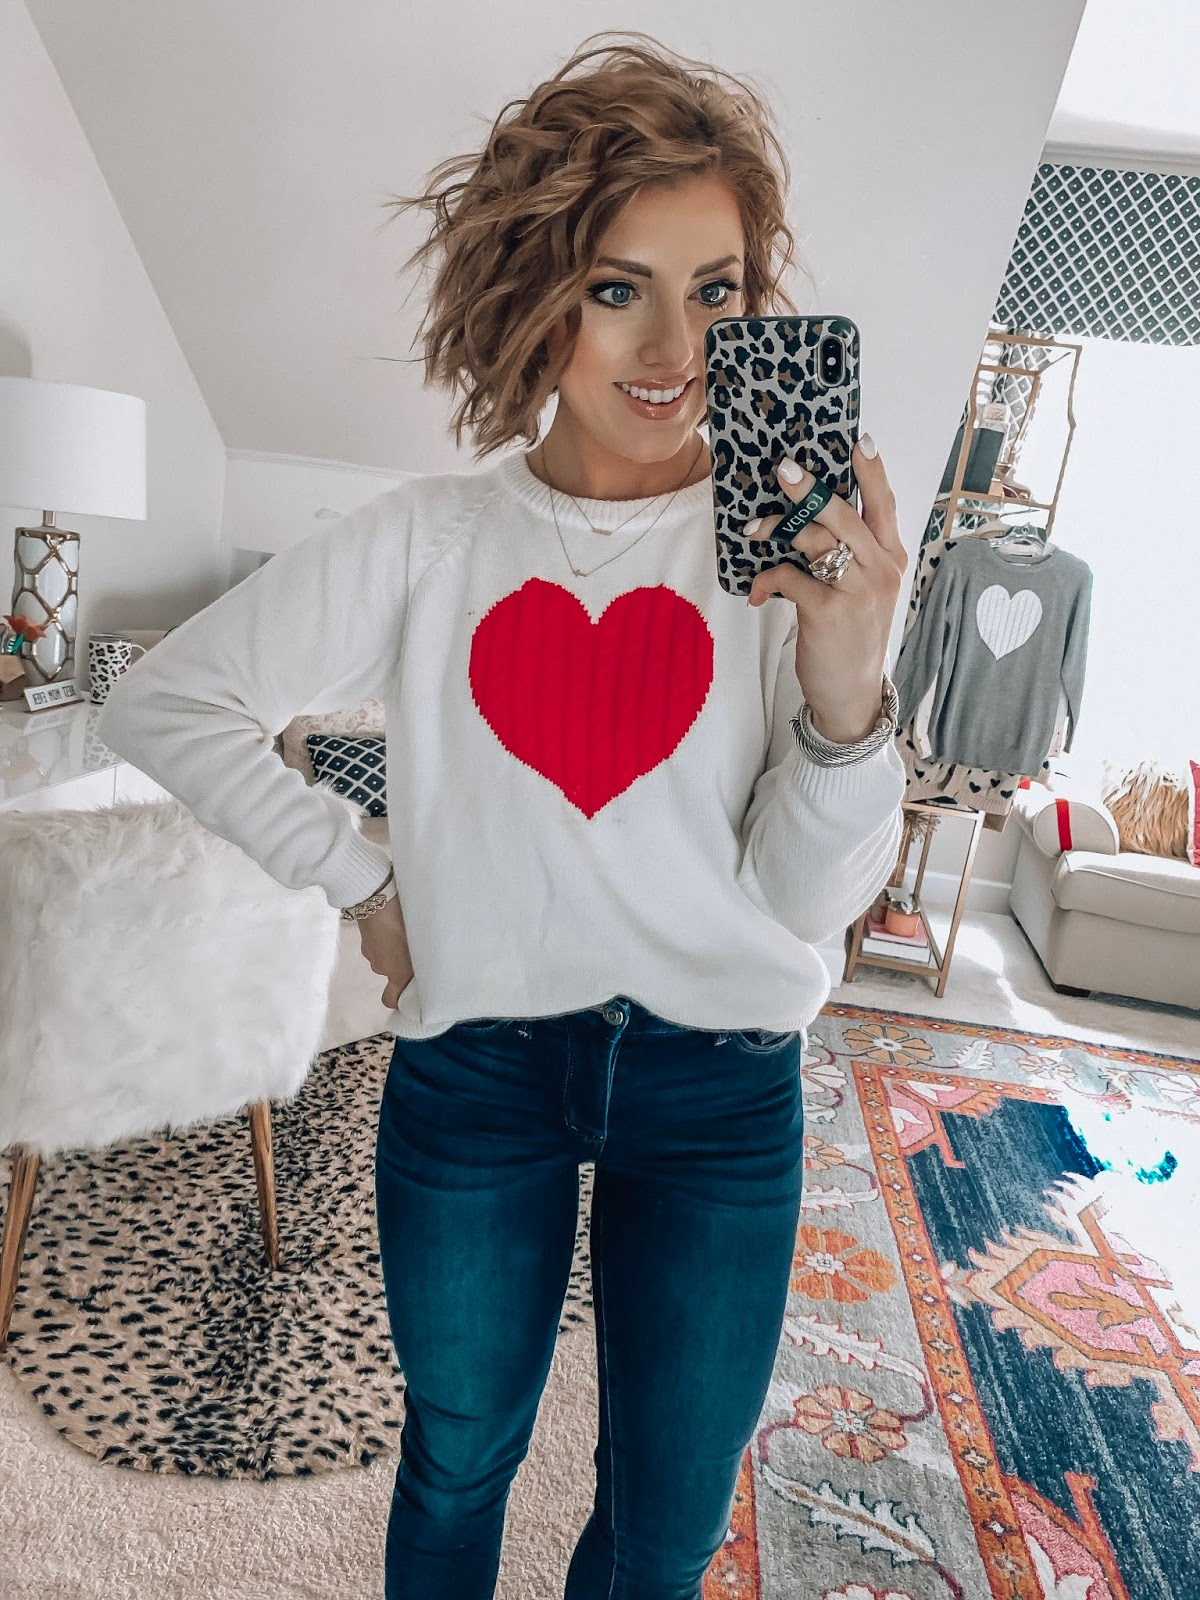 Recent Amazon Finds - Under $30 Heart Sweater for Valentine's Day - Something Delightful Blog #AmazonFashion #RecentFinds #Hearts #ValentinesDay #AffordableFashion